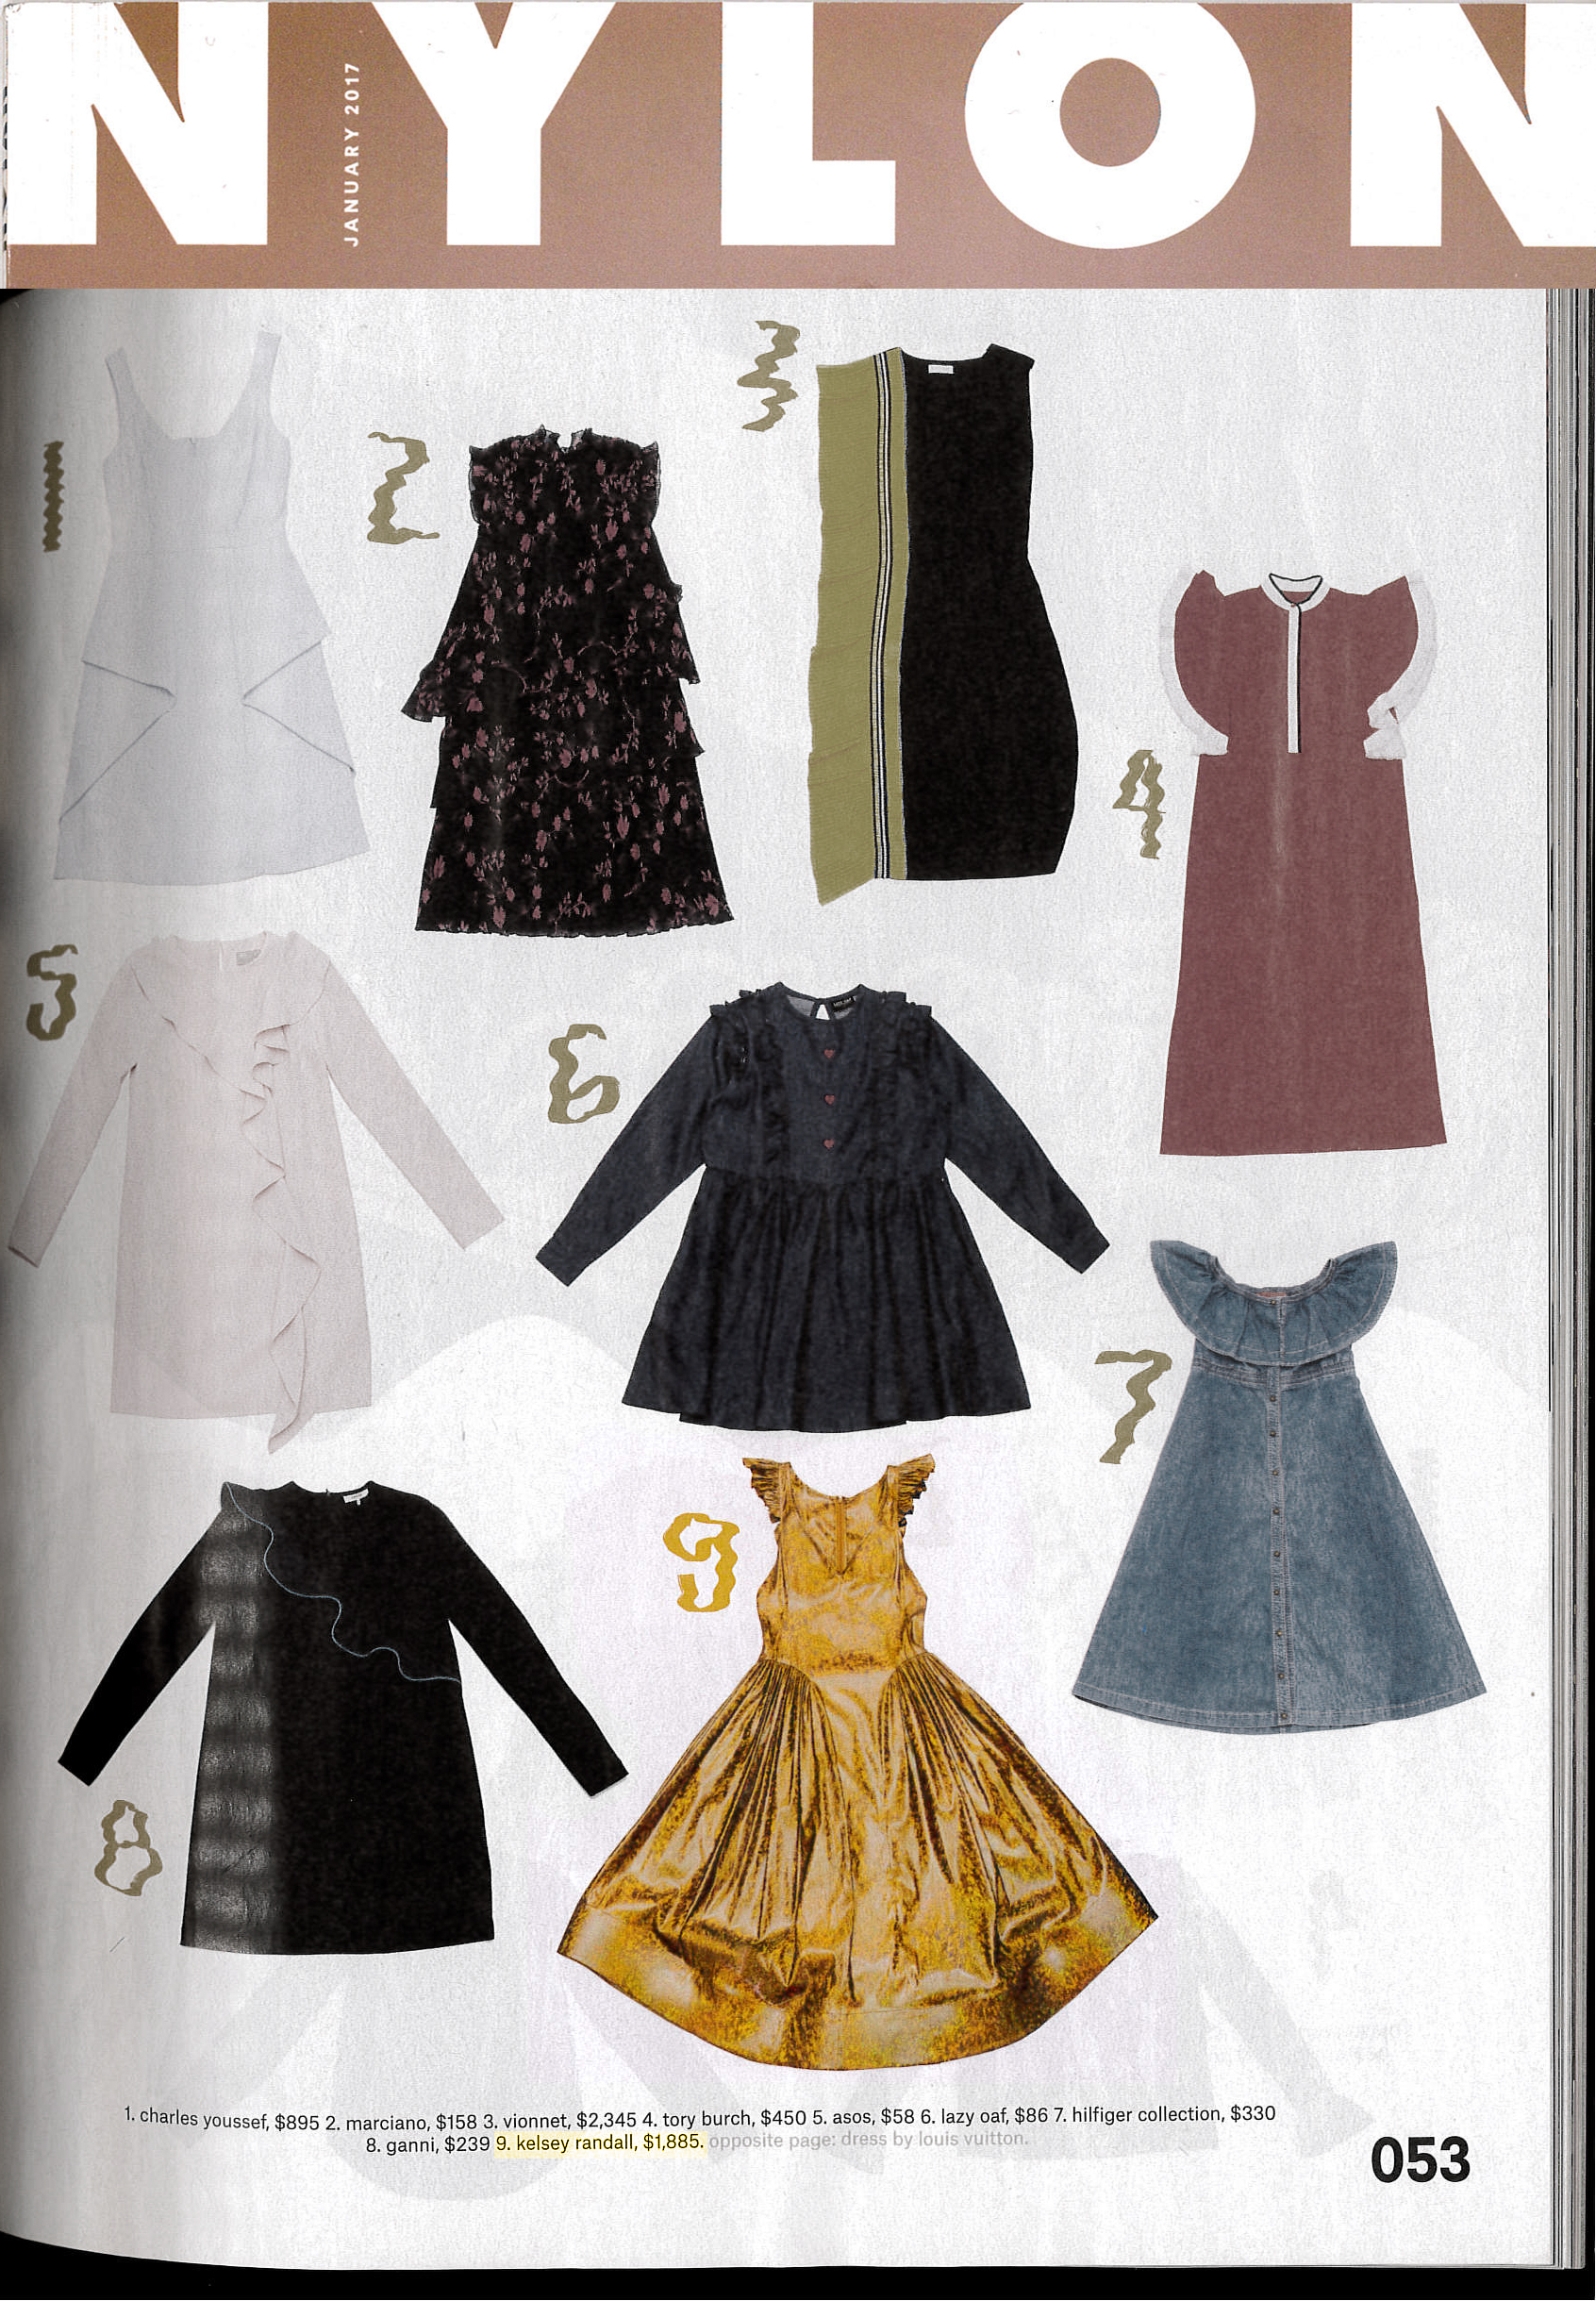 nylon magazine print issue shopping market pages what to buy wear kelsey randall gold holographic horsehair angel dress ruffles full skirt made-to-measure womenswear bridal custom bespoke handcrafted sustainable ethical local production manufacturing made in new york city nyc brooklyn bushwick emerging designer ones to watch new talent rising star best of american fashion young designer